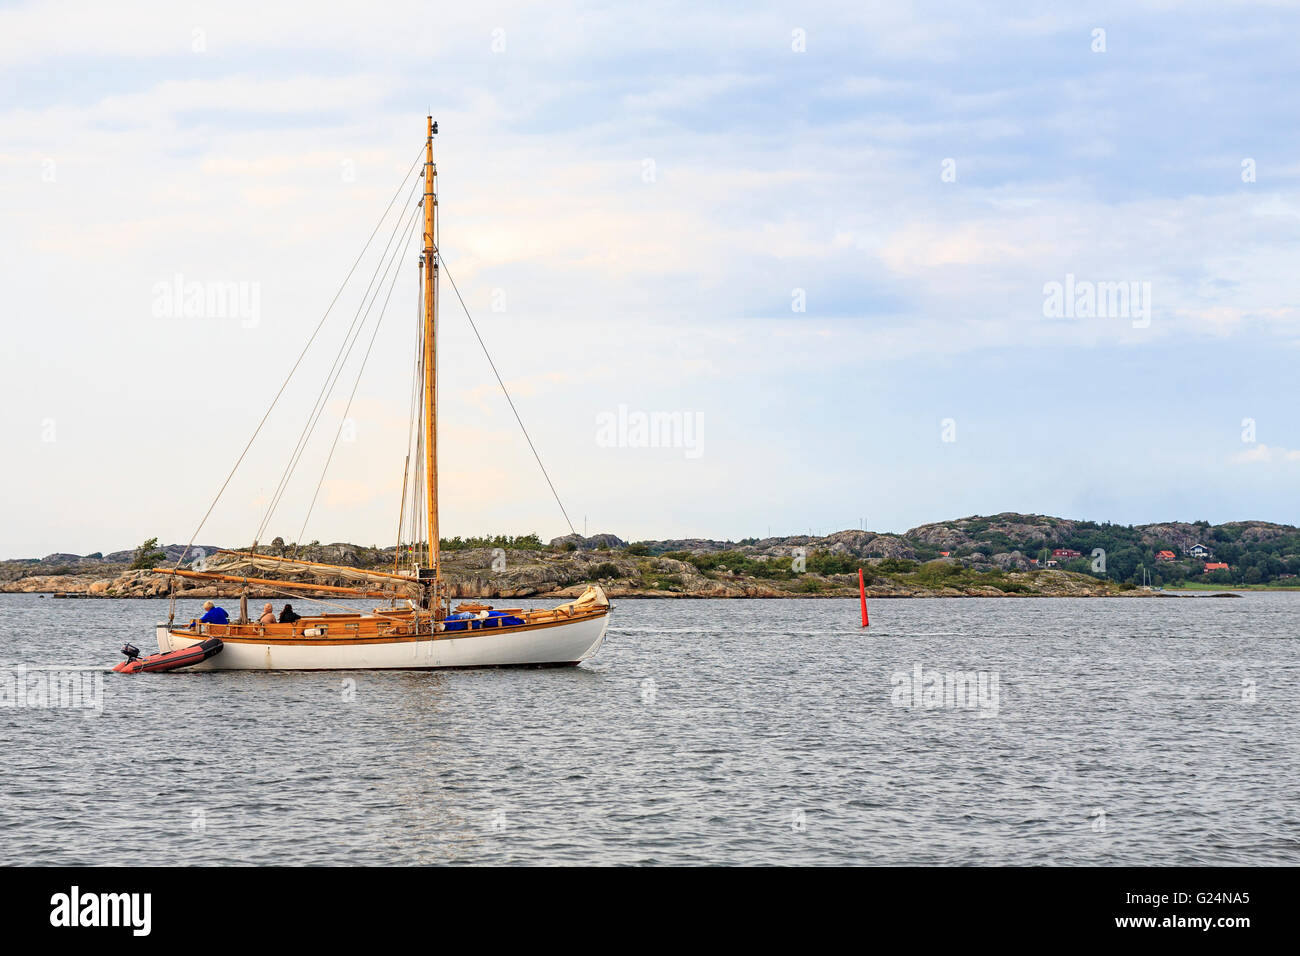 Old Wooden Sailboat In The Archipelago On The West Coast Of Sweden